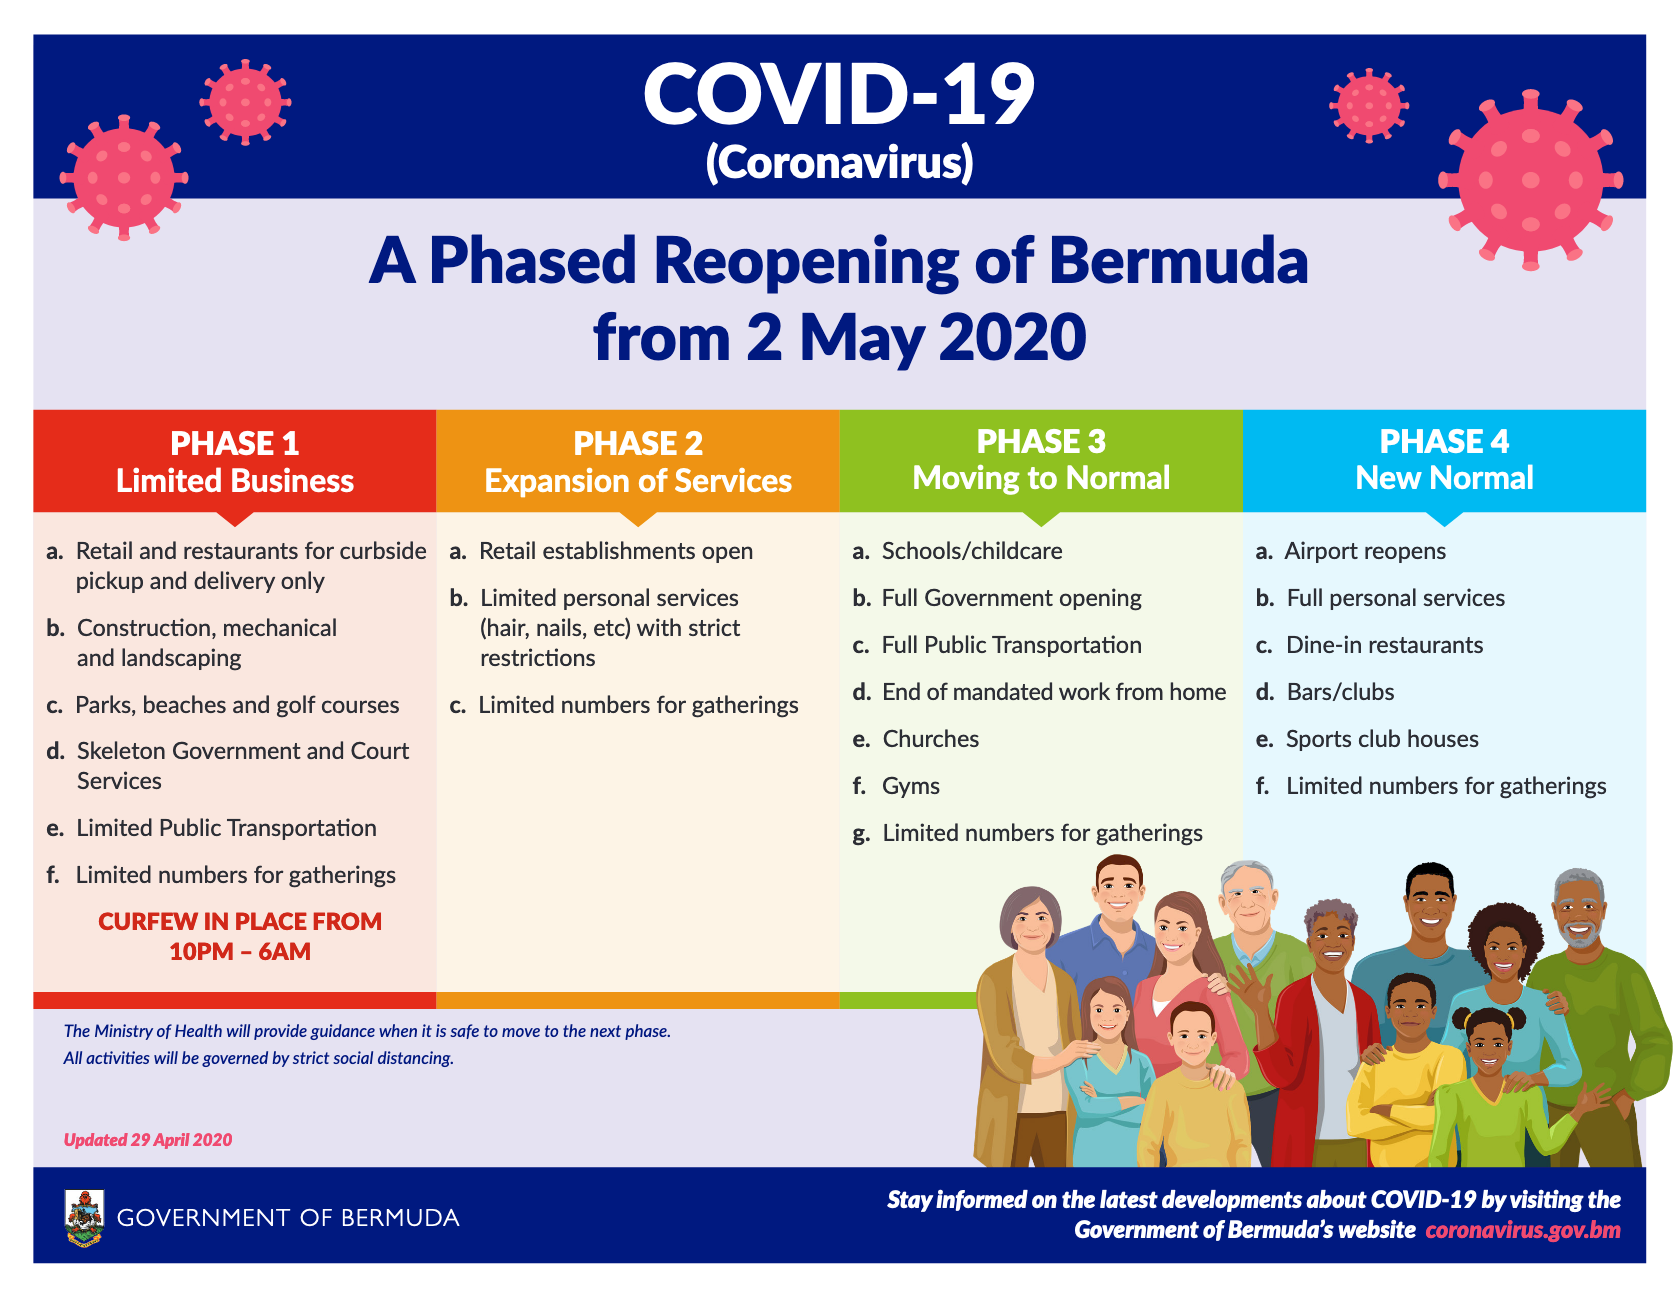 Bermuda COVID-19 Phased Reopening